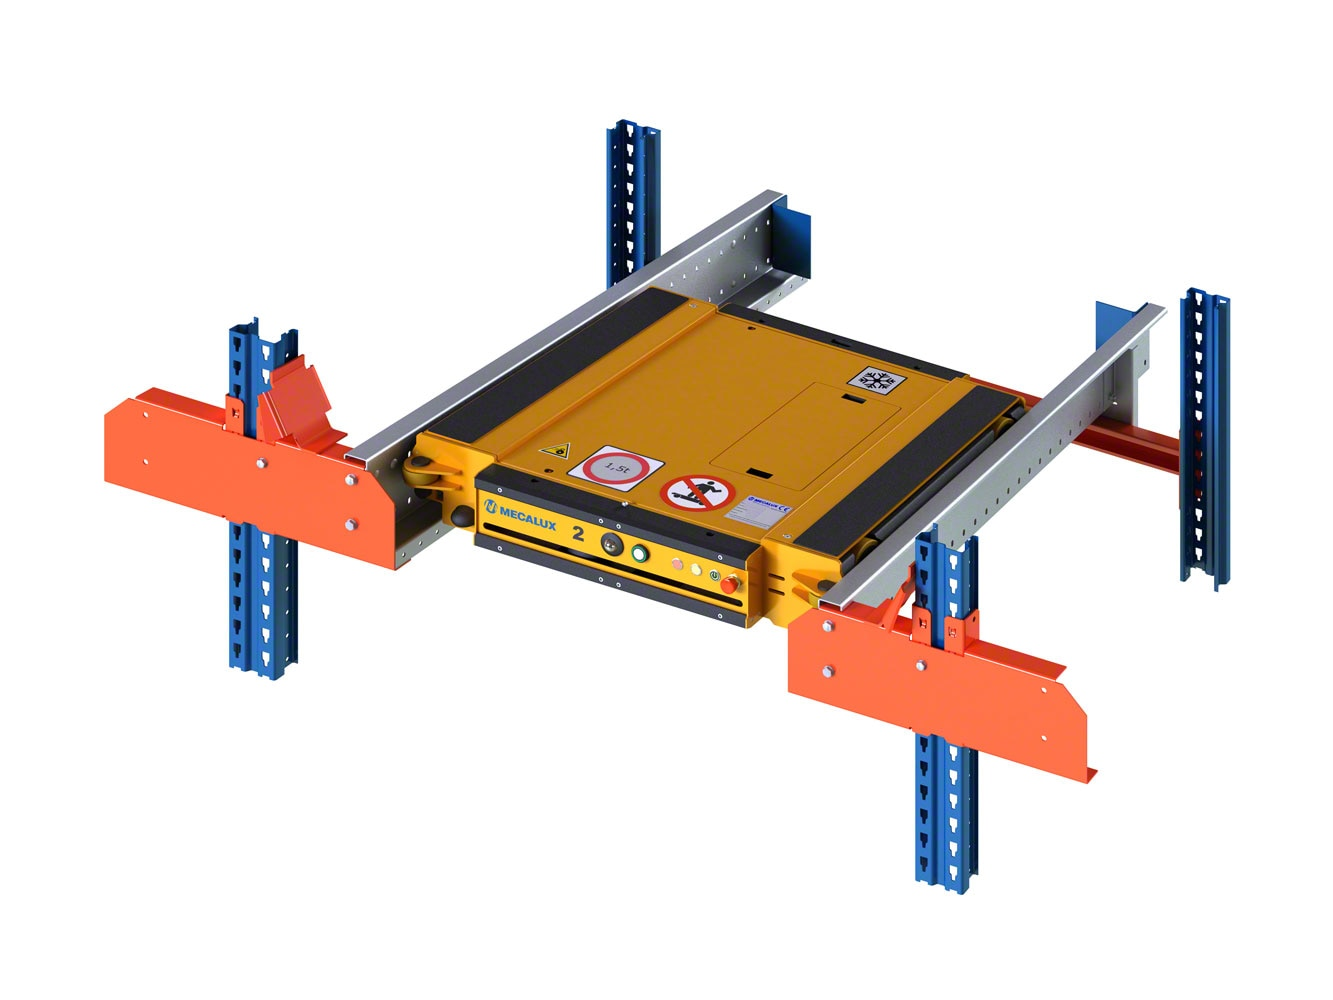 Different structural components specifically for the Pallet Shuttle system